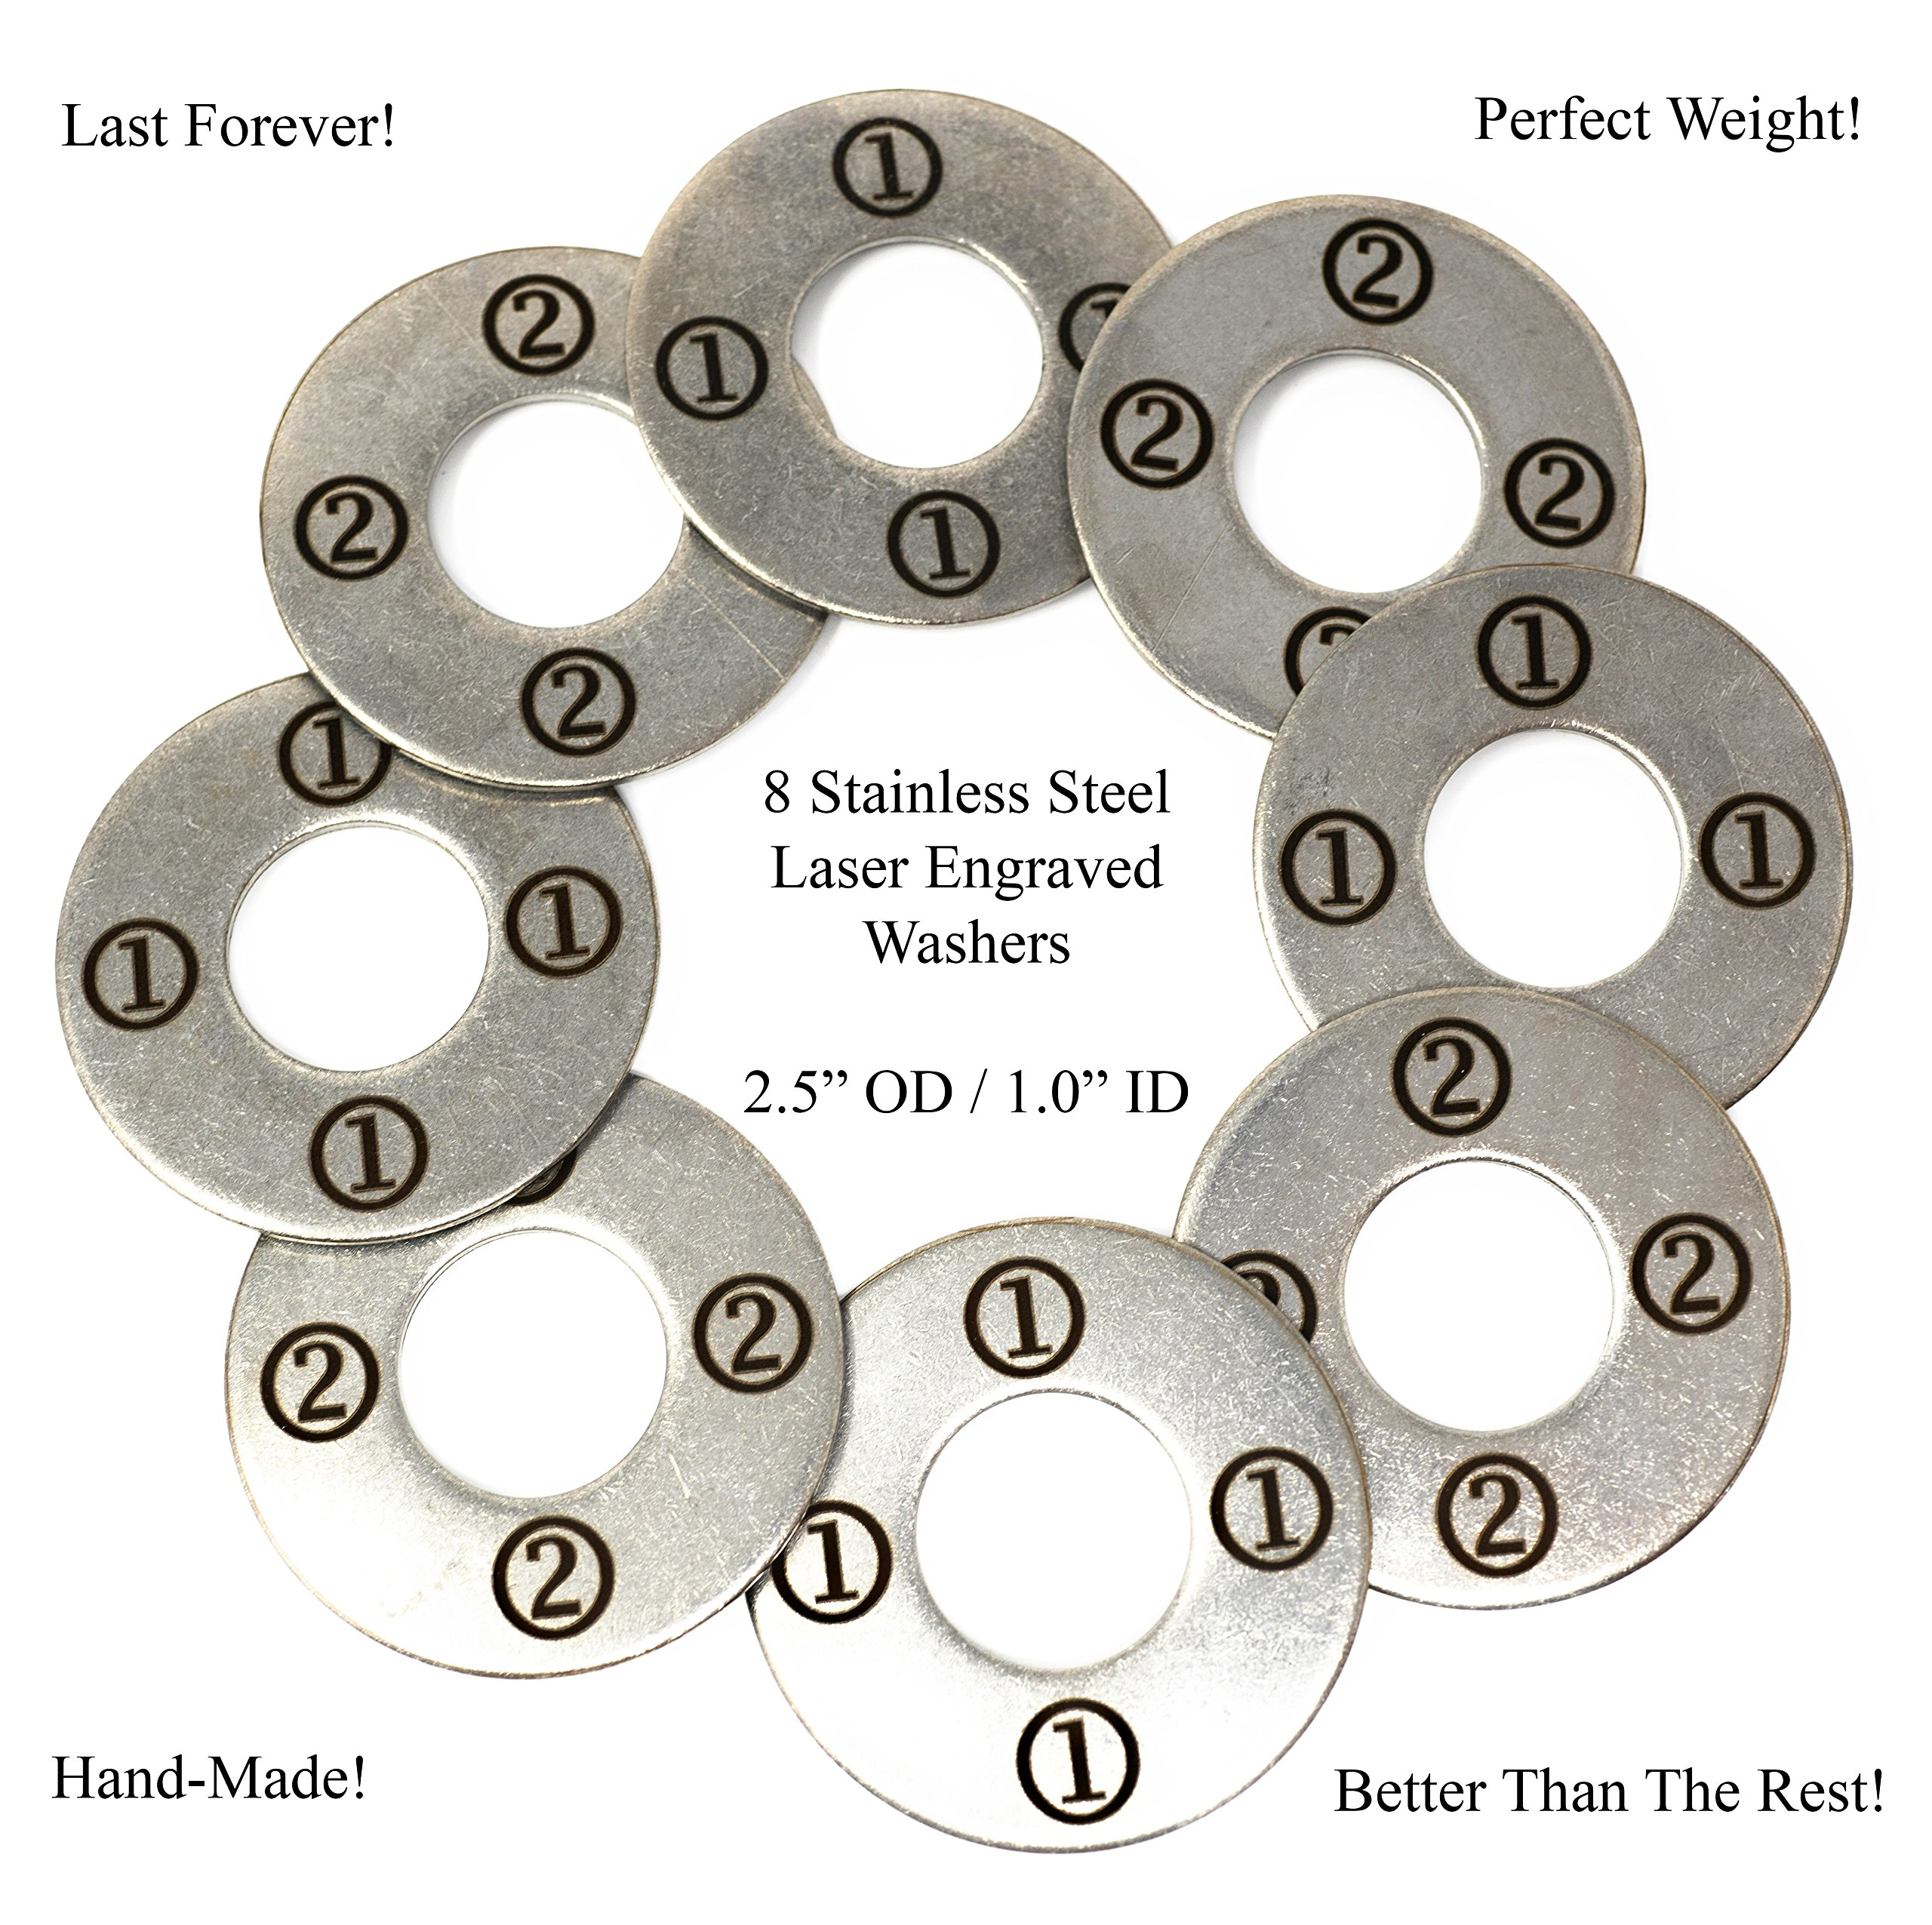 Laser Engraved Stainless Steel Replacement 2-1/2'' Washer Toss Pitching Game Washers (Set of 8) by AirstreamIT